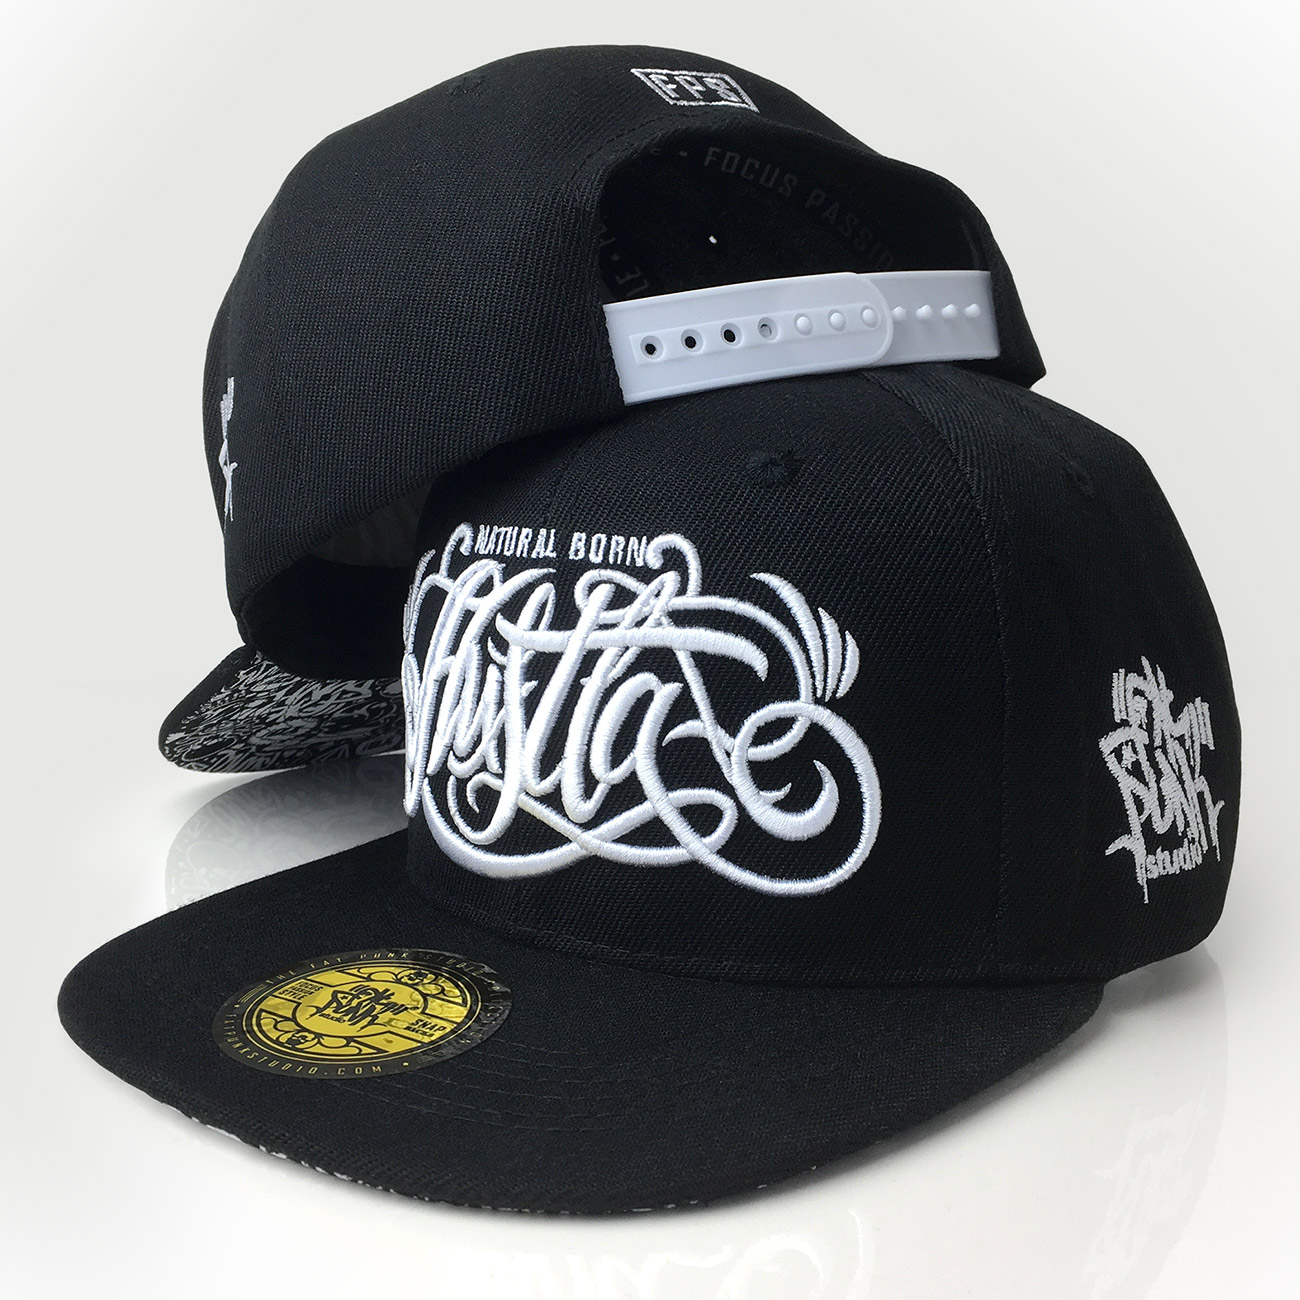 snapback-cap-natural-born-hustla-fat-punk-studio-02